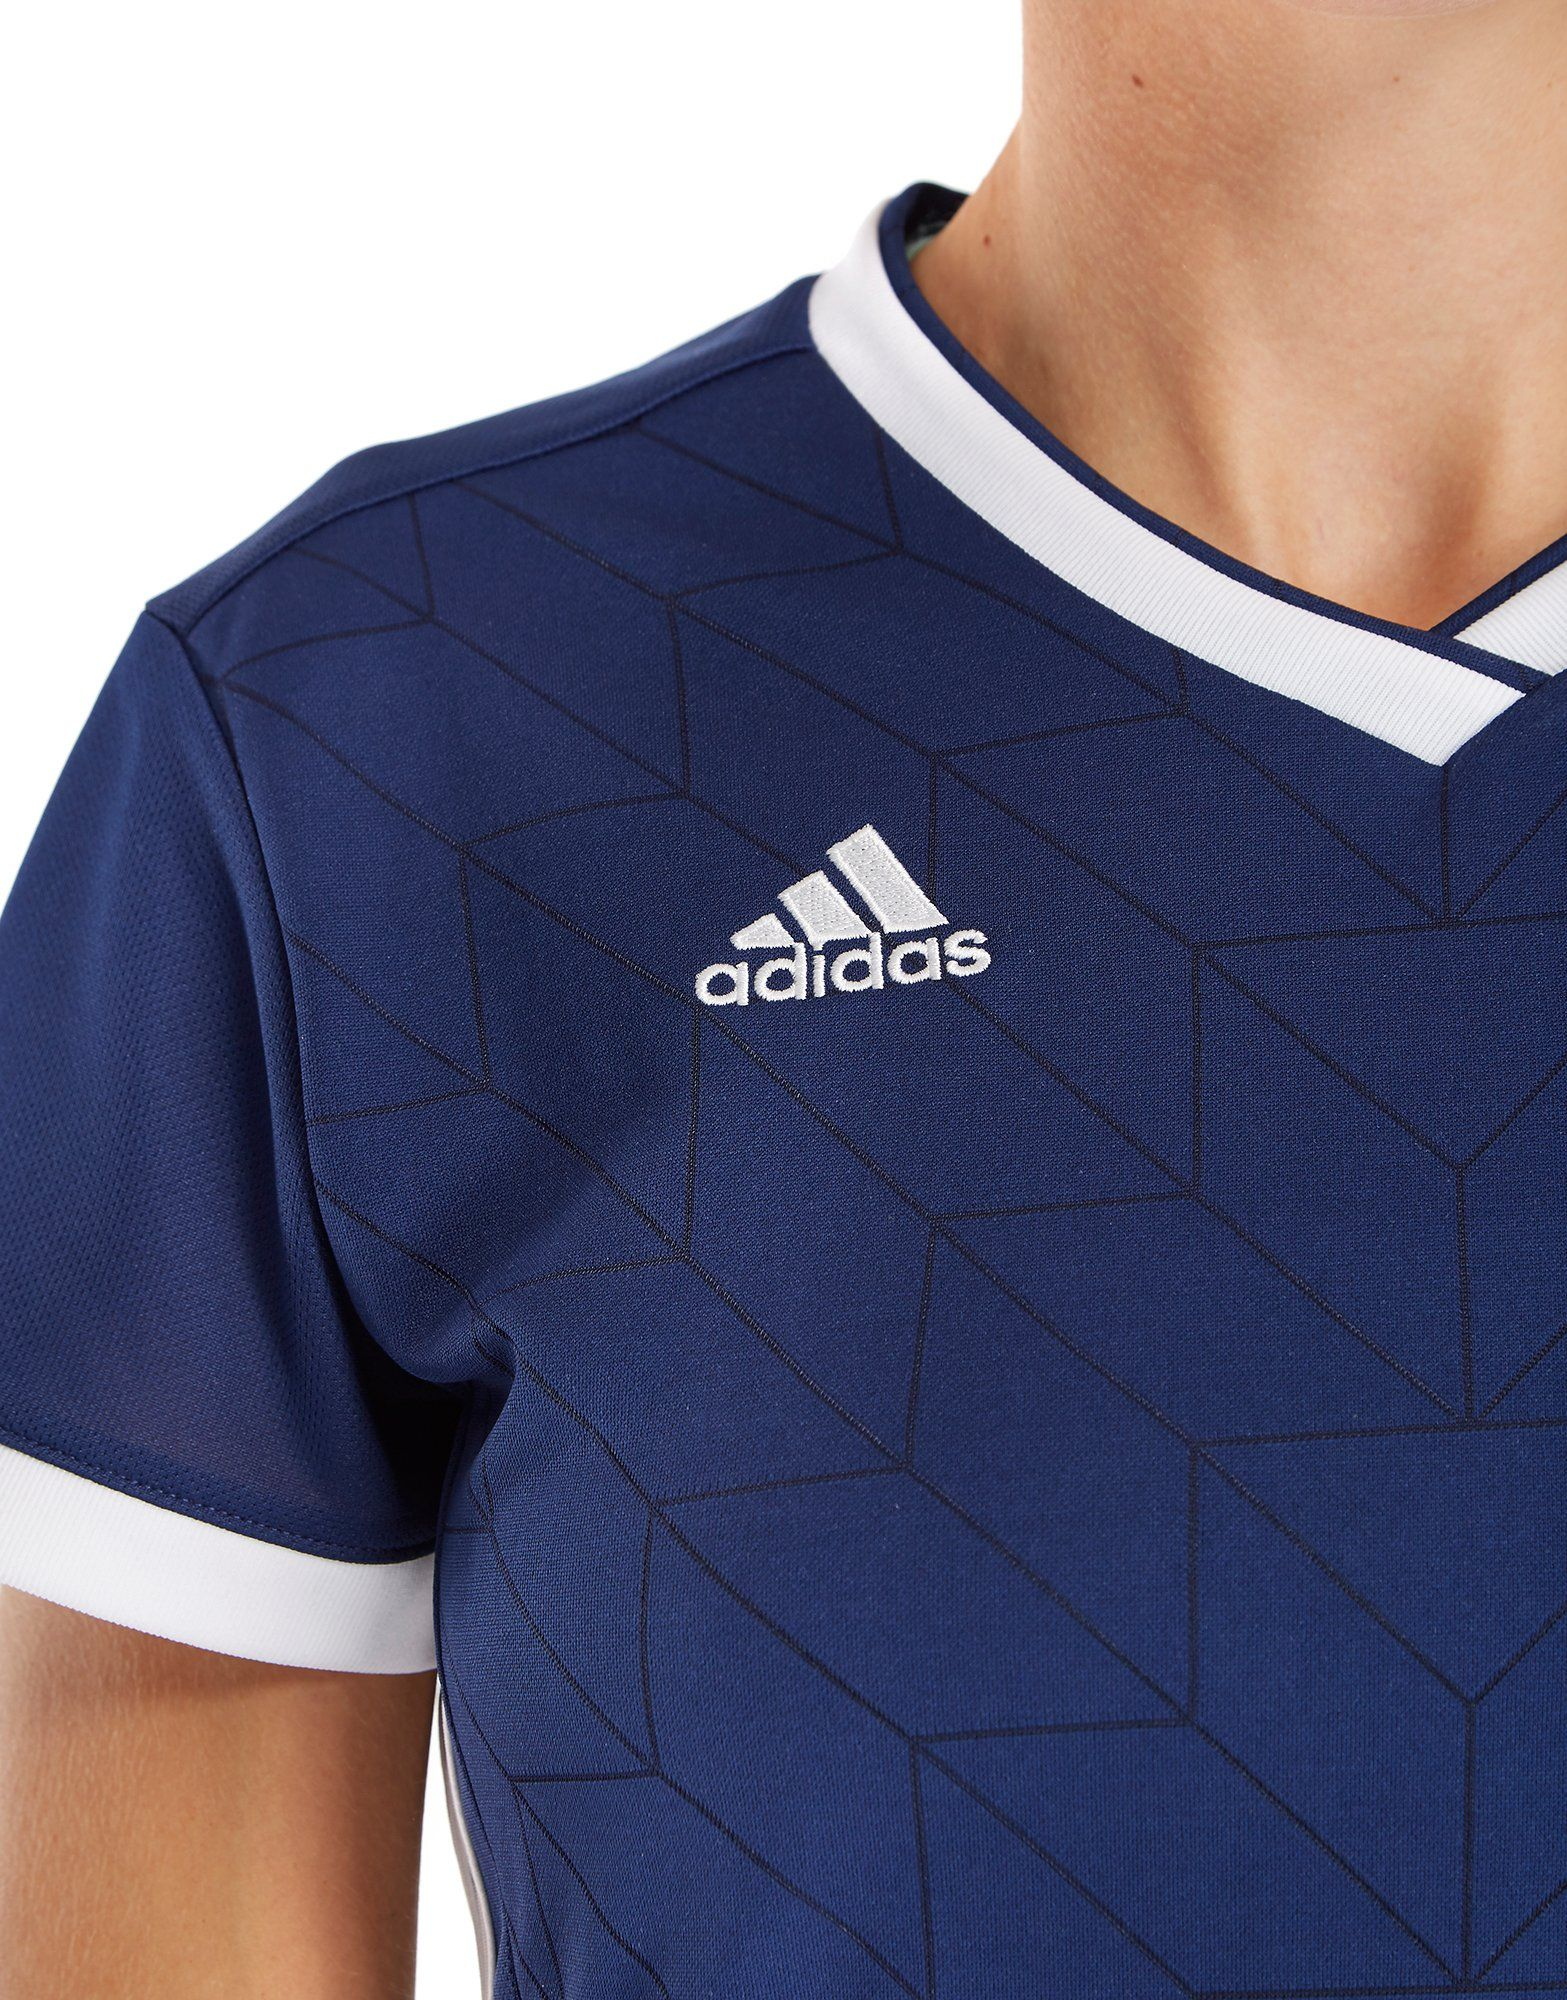 adidas Scotland 2018/19 Home Shirt Women's